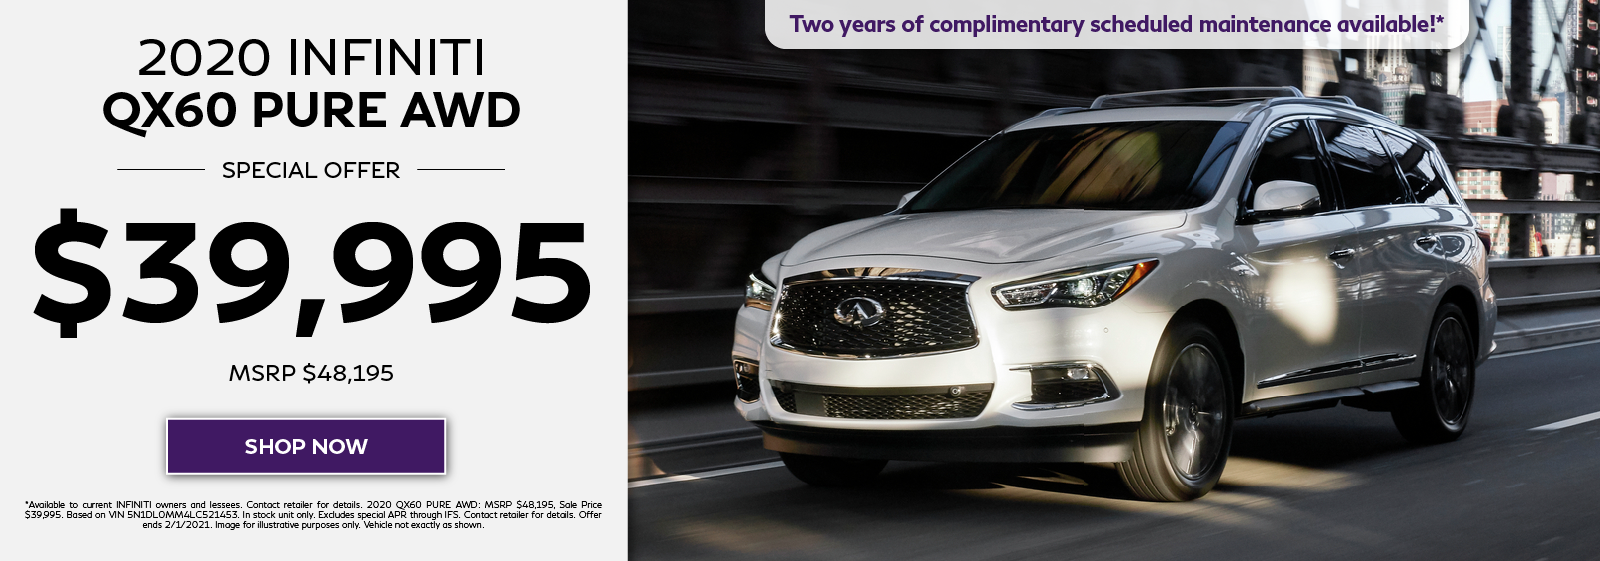 Purchase a new 2020 INFINITI QX60 PURE AWD for $39,995 (MSRP $48,195) plus get two years complimentary scheduled maintenance. Click to shop now.